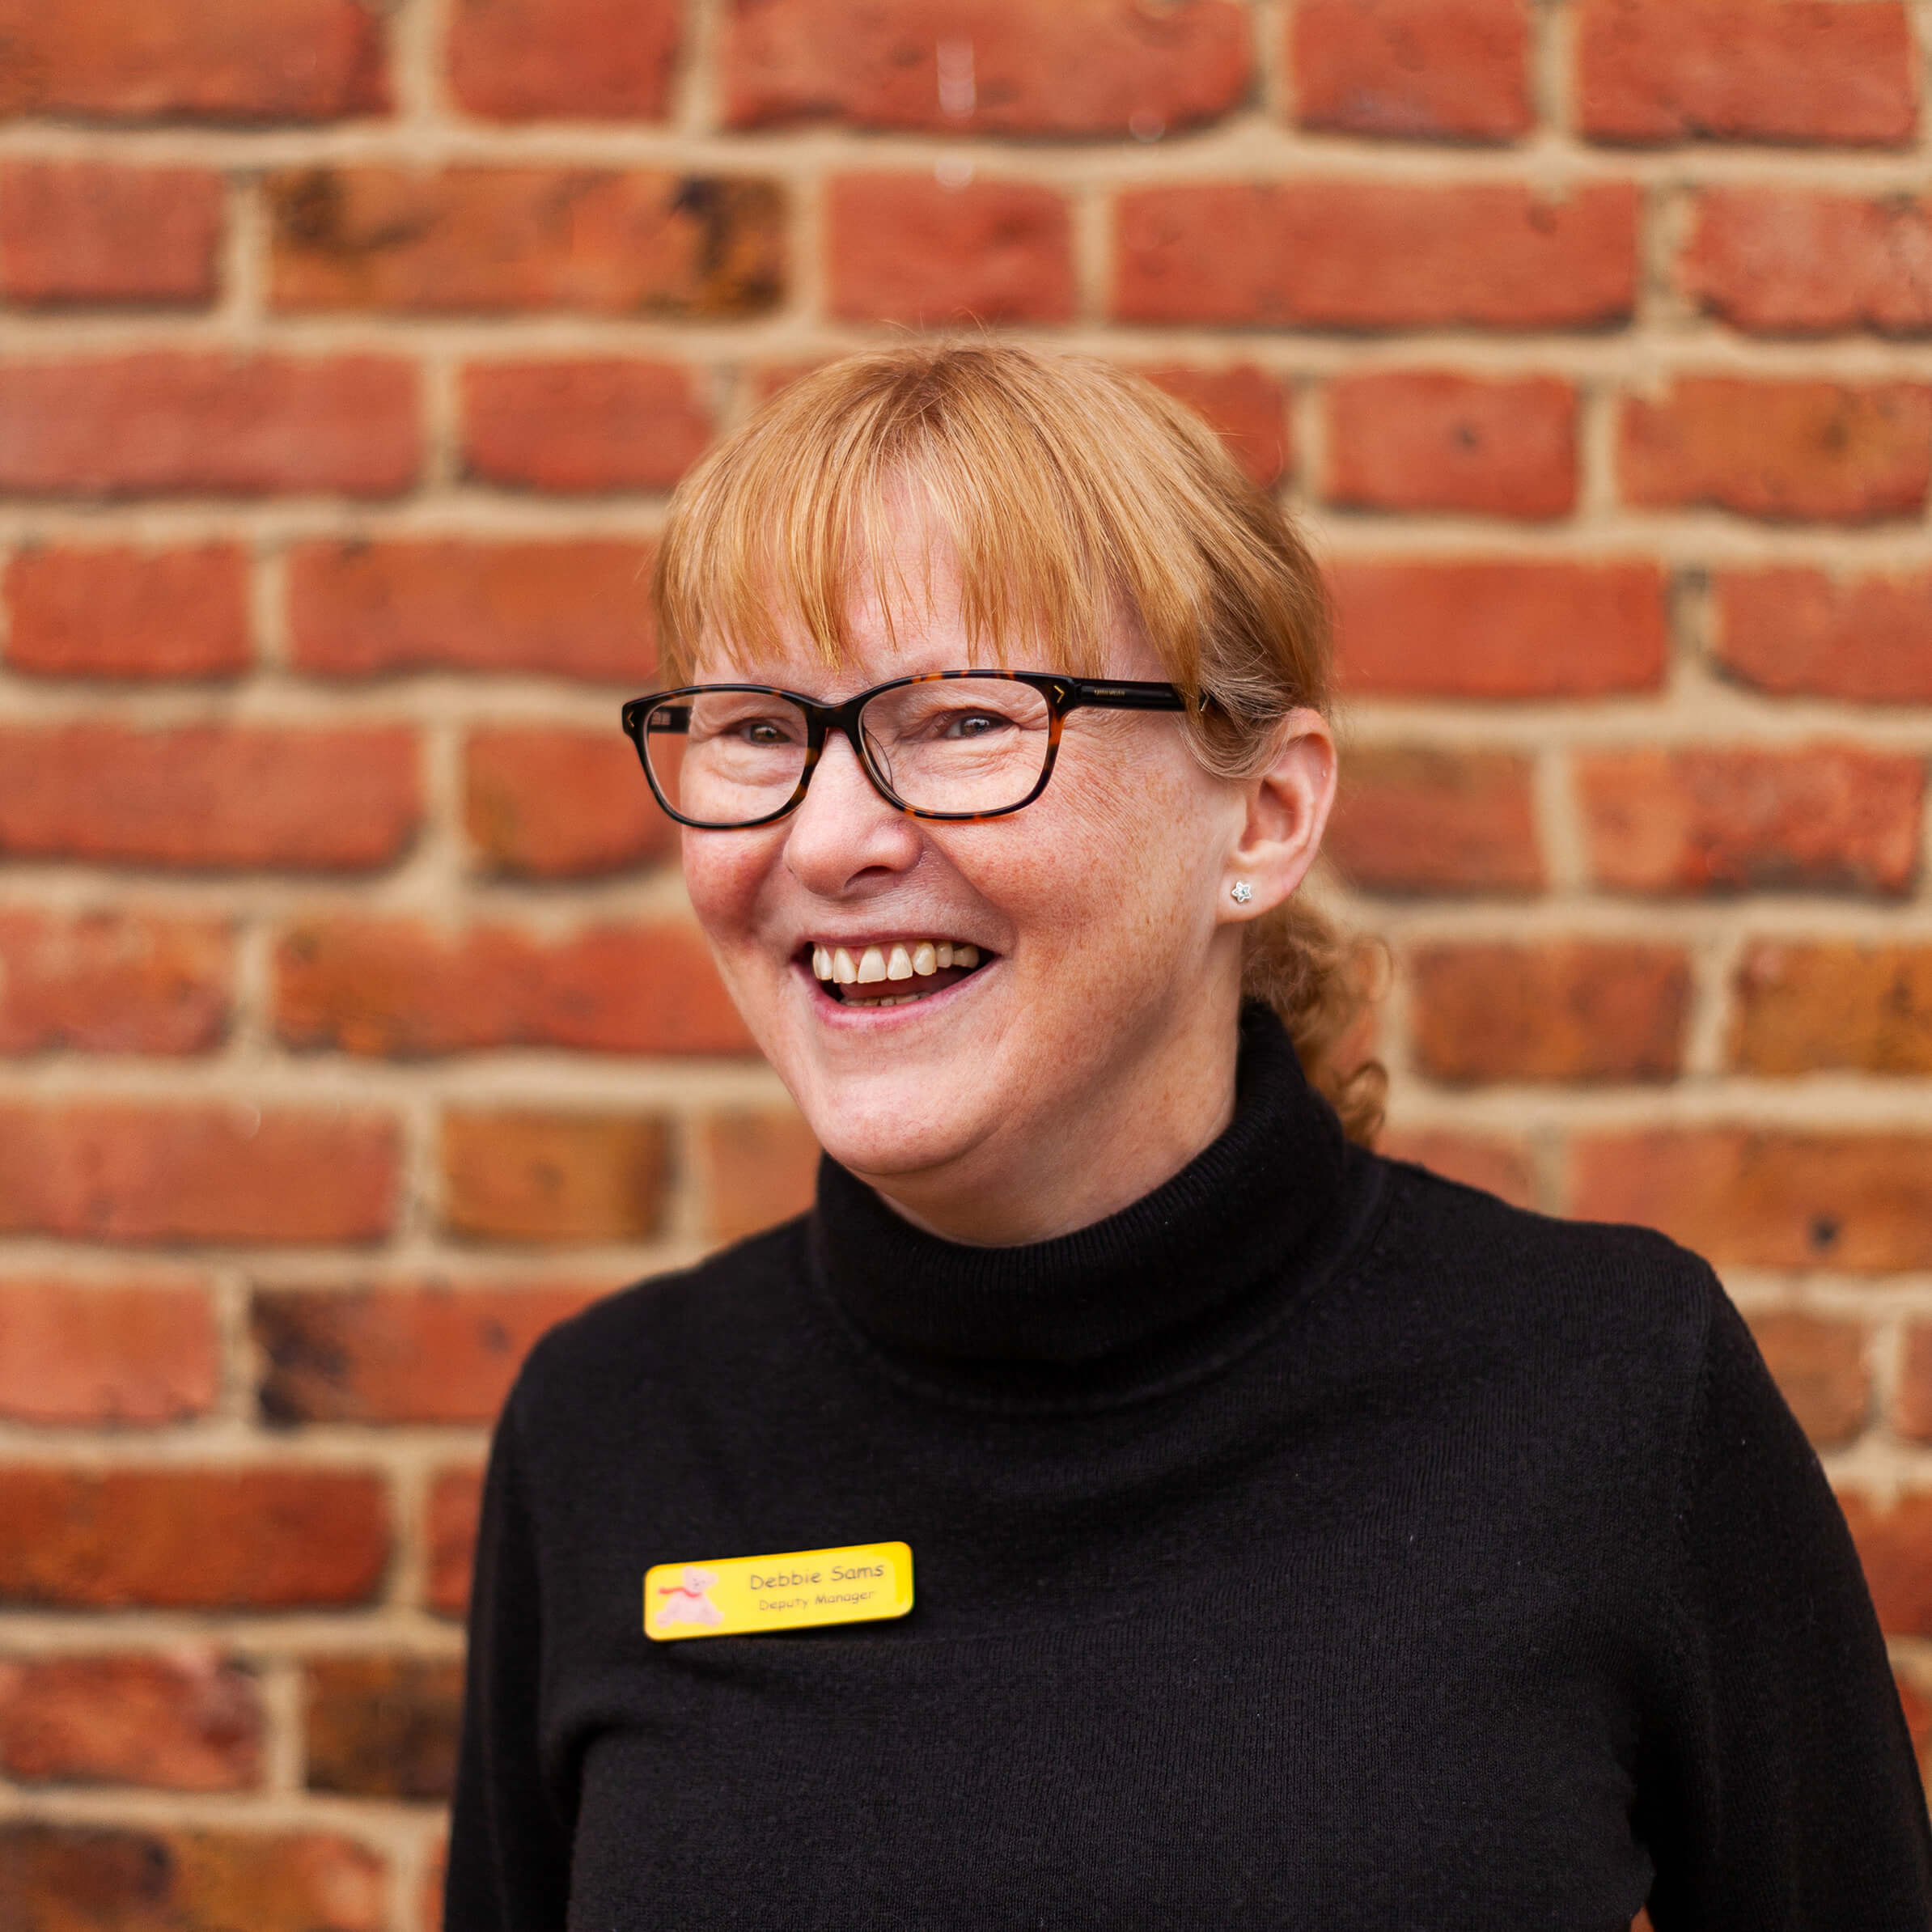 Debbie Sams - Deputy Manager of the Manor House (Ruxley)